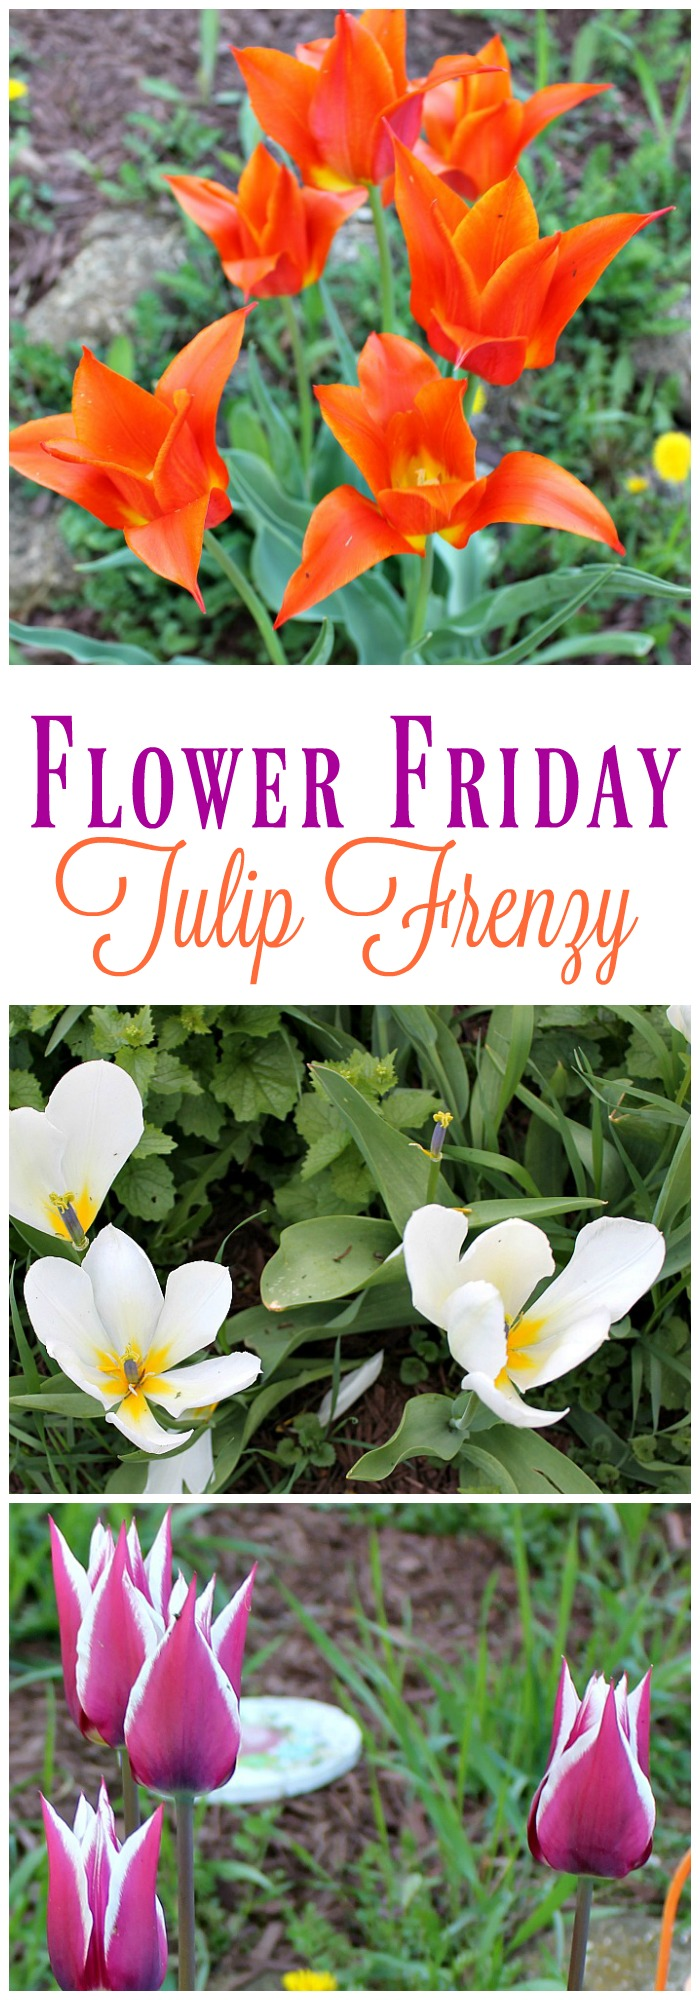 This week's Flower Friday edition features a frenzy of tulips in bold colors like purple, orange, yellow and white